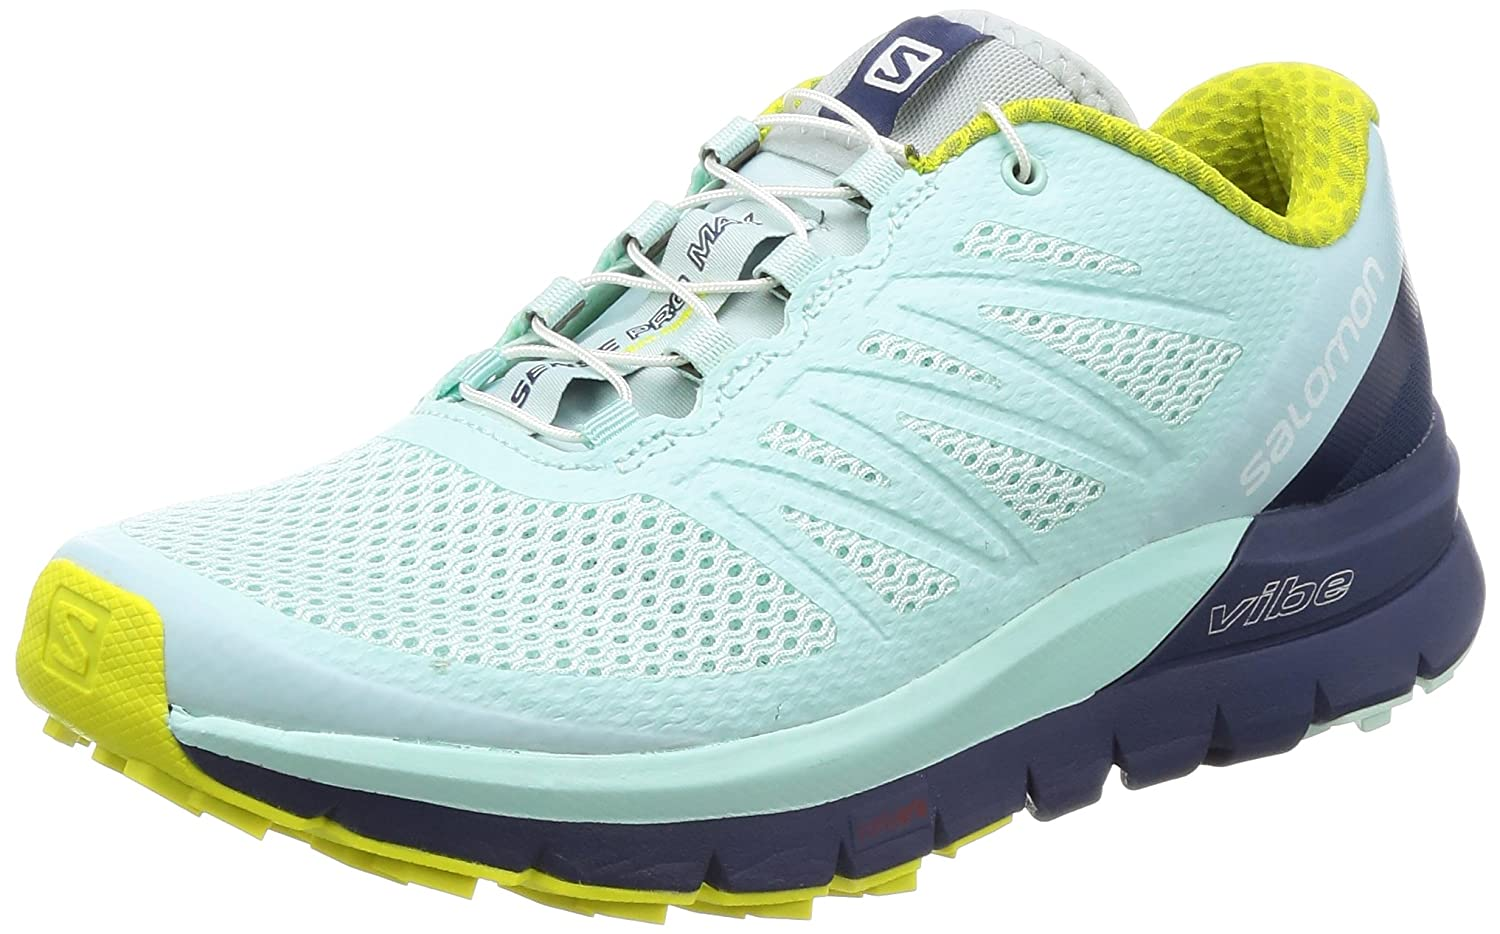 【最安値挑戦】 [サロモン] トレイルランニングシューズ SENSE Blue/Sulphur PRO MAX W Spring ウィメンズ TRAIL Spring RUNNING B01HD23CN4 Fair Aqua/Crown Blue/Sulphur Spring 24.0 cm 24.0 cm|Fair Aqua/Crown Blue/Sulphur Spring, Jewelry&Watch LuxeK:a259f129 --- phpbb.bam-digital.de